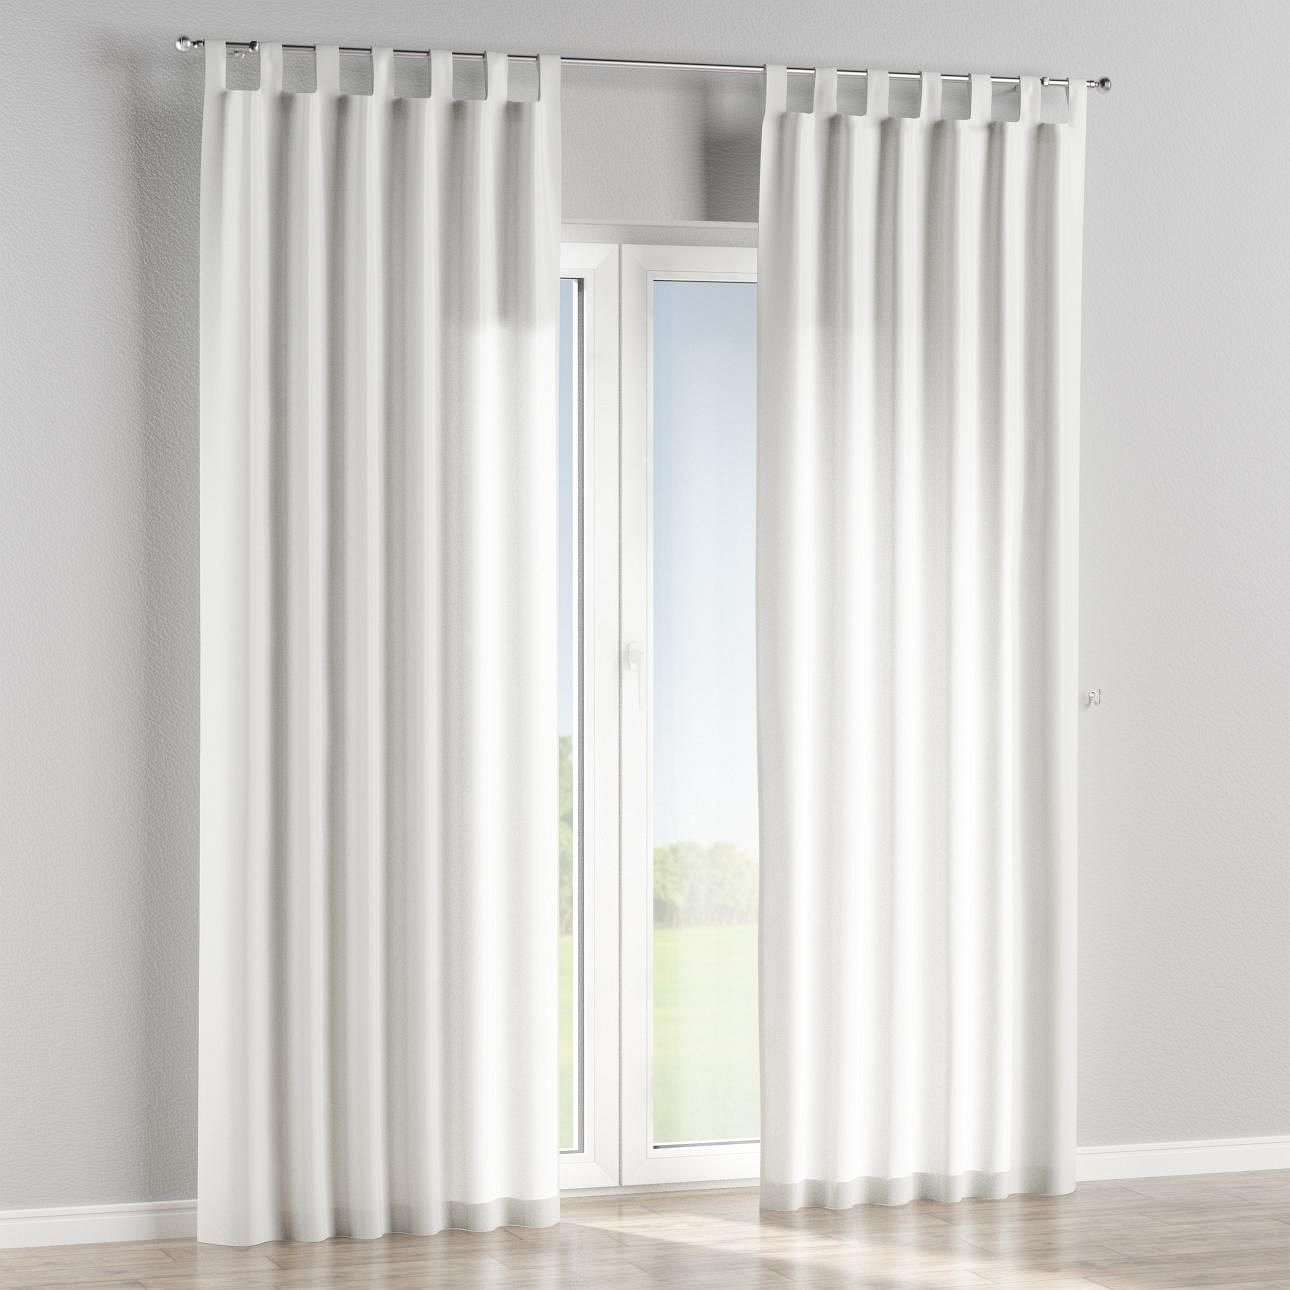 Tab top curtains in collection Victoria, fabric: 130-05